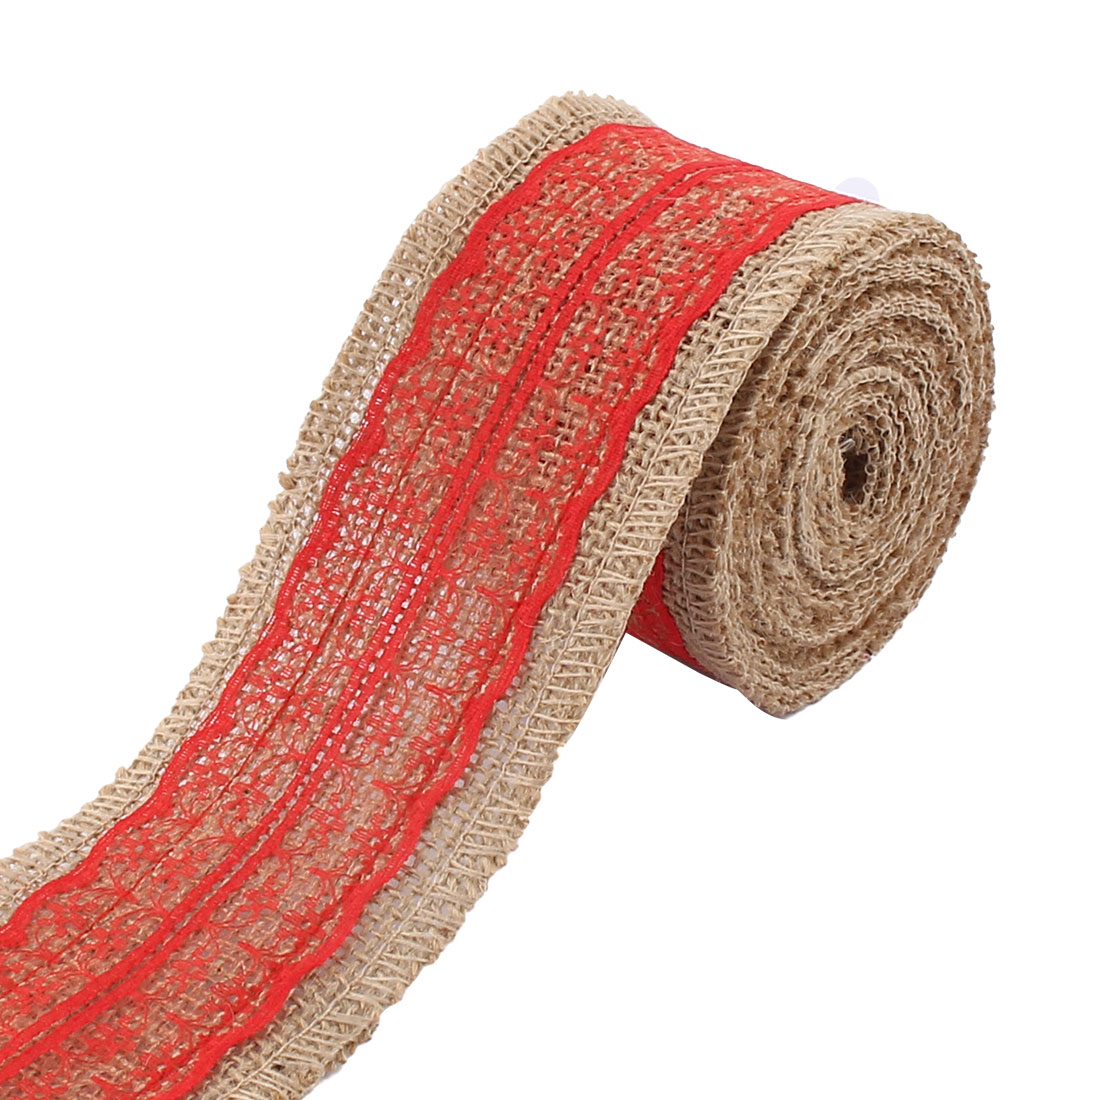 Unique Bargains Christmas Burlap DIY Gift Wrapping Packing Ornament Craft Ribbon Roll Tape Red